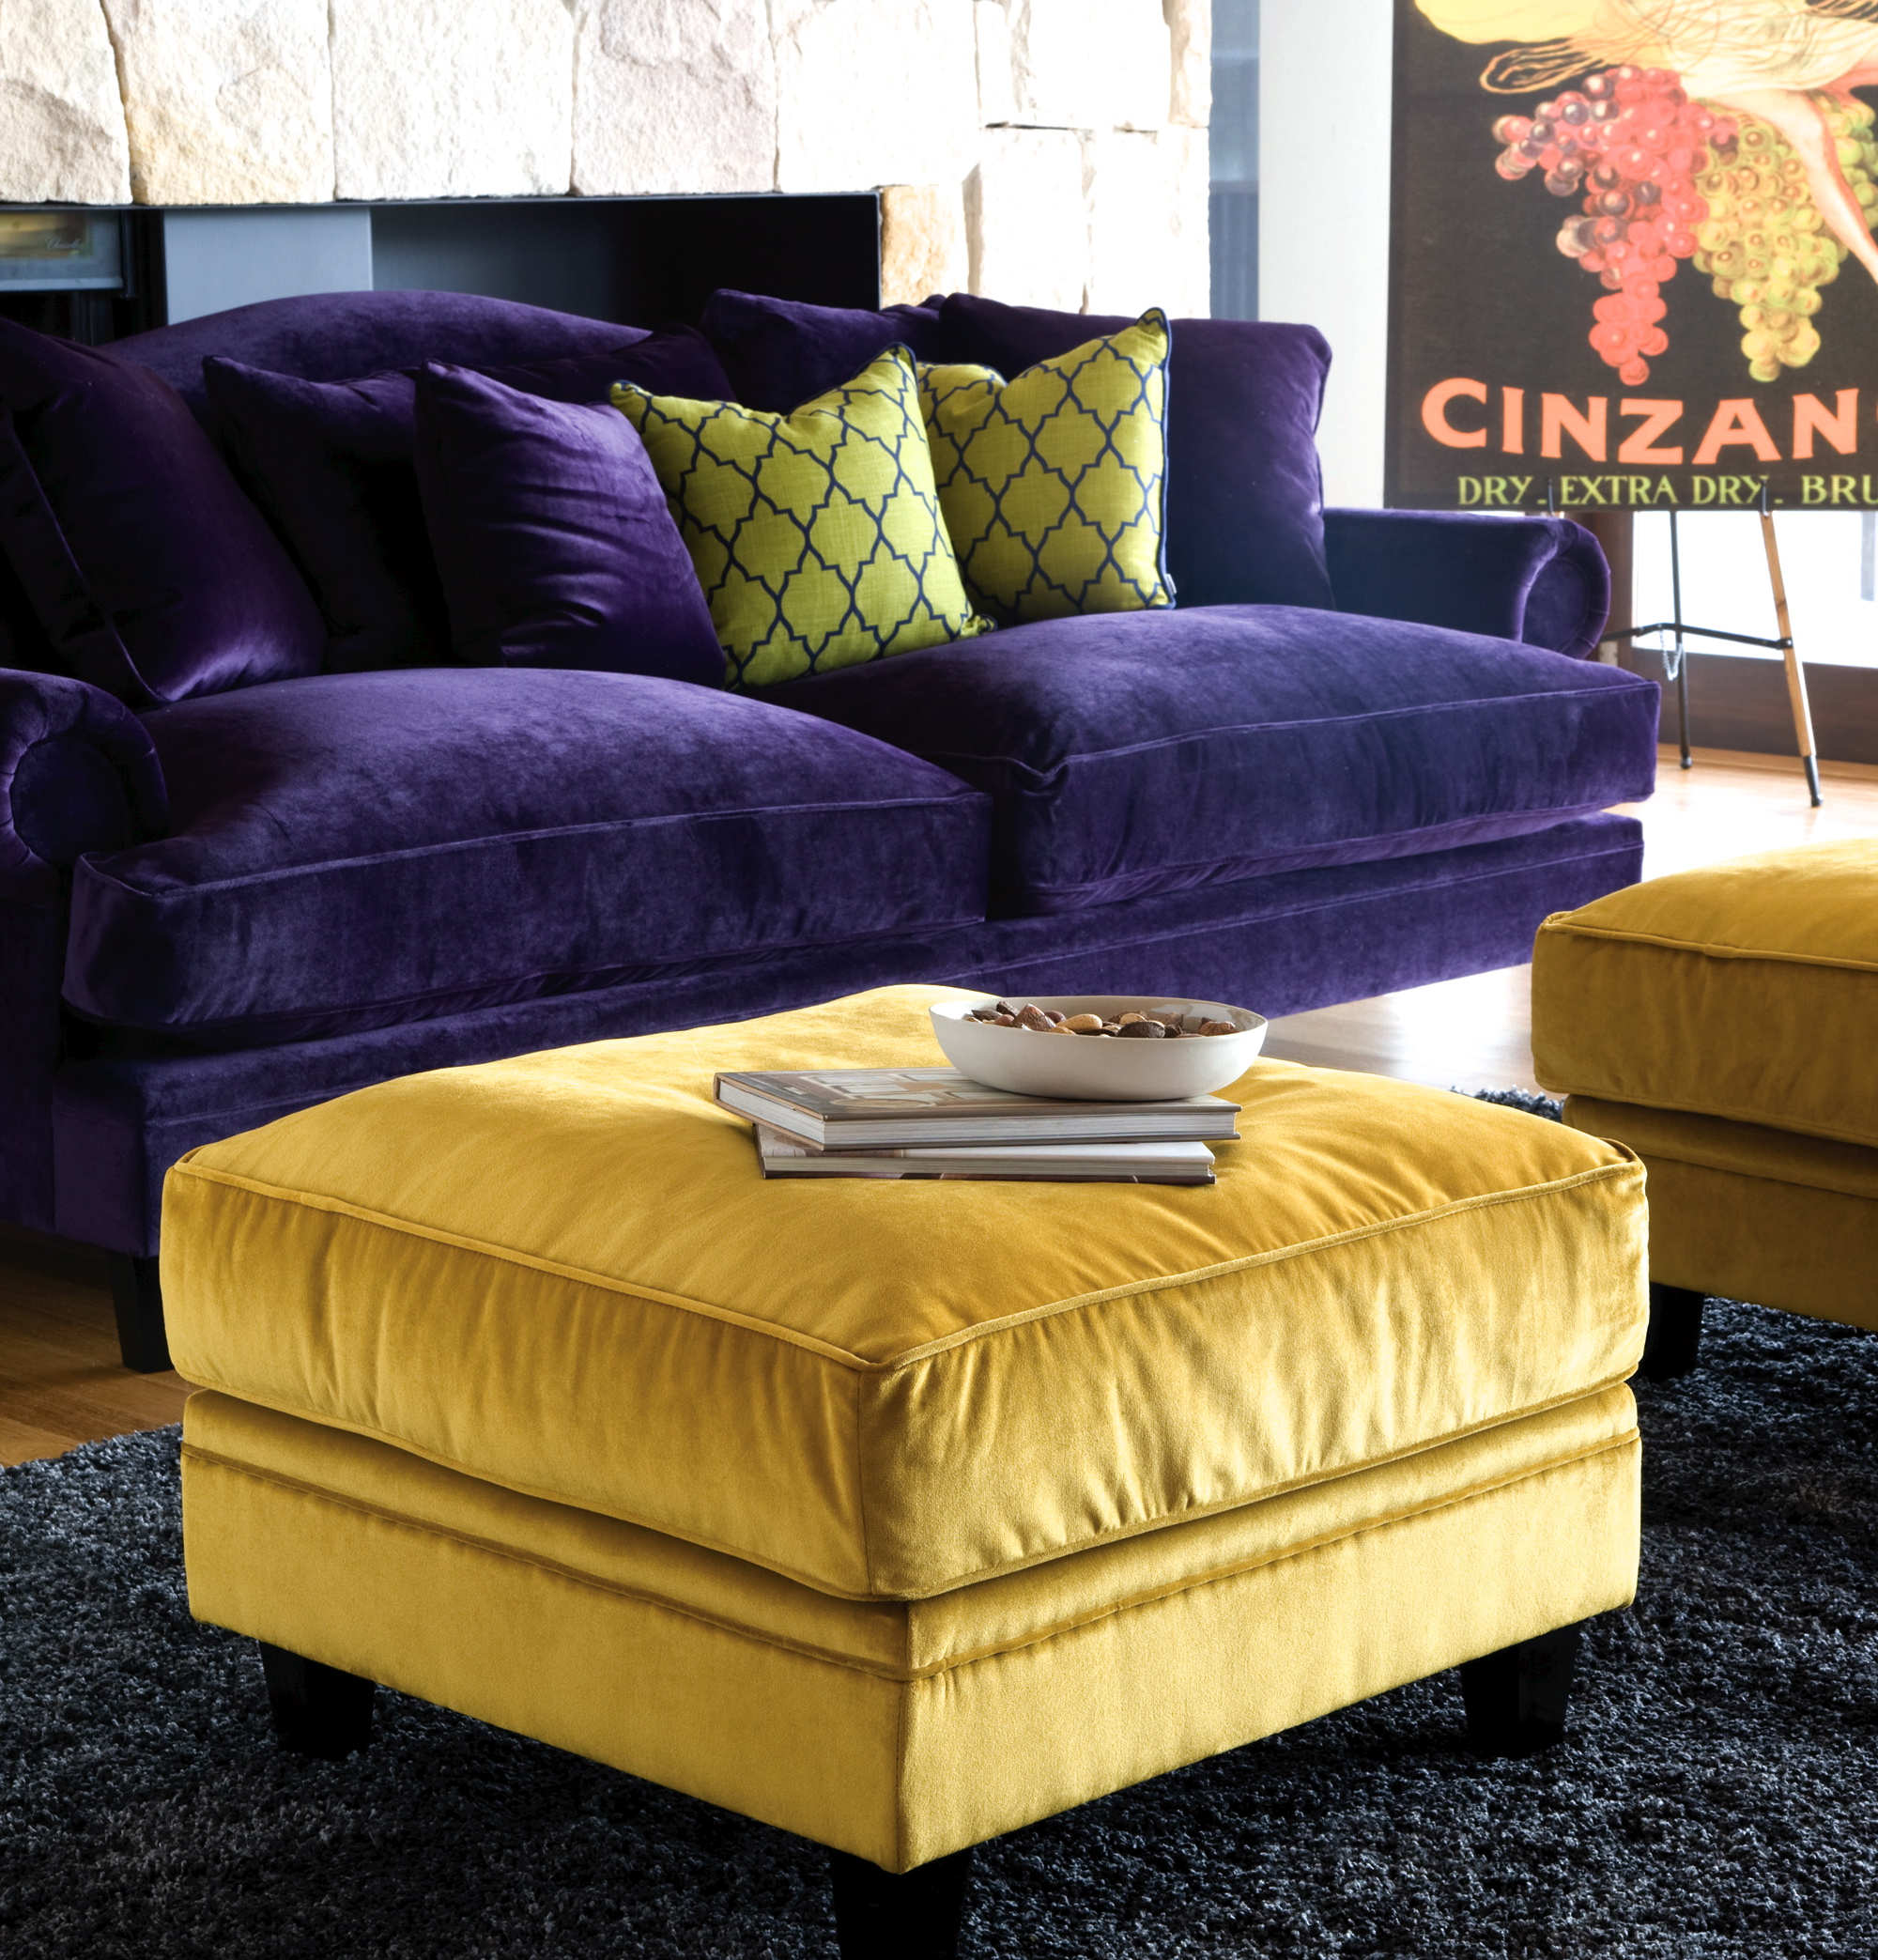 Purple and Yellow Coco Sofa from Oz Design